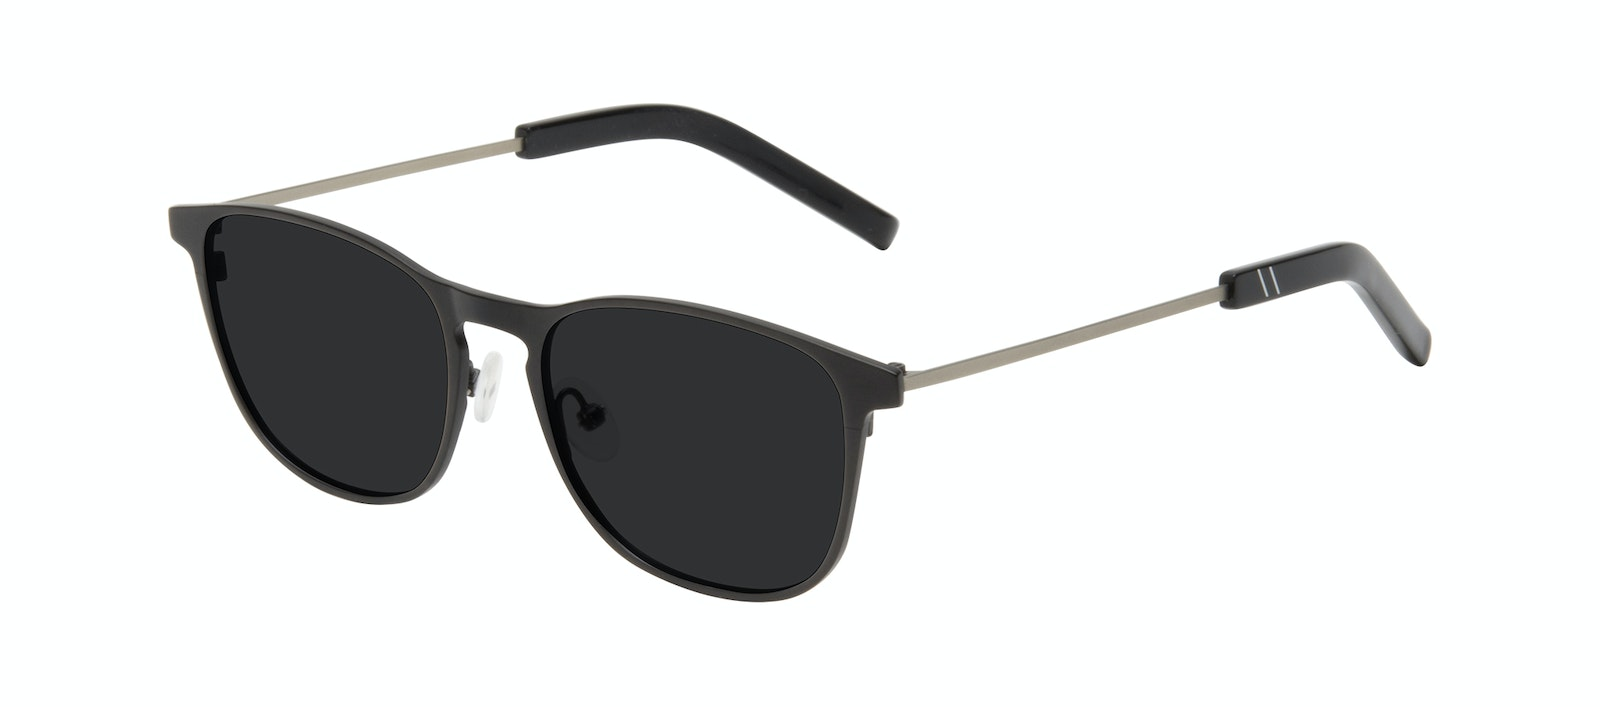 Affordable Fashion Glasses Square Sunglasses Men Elevate Onyx Matte Tilt